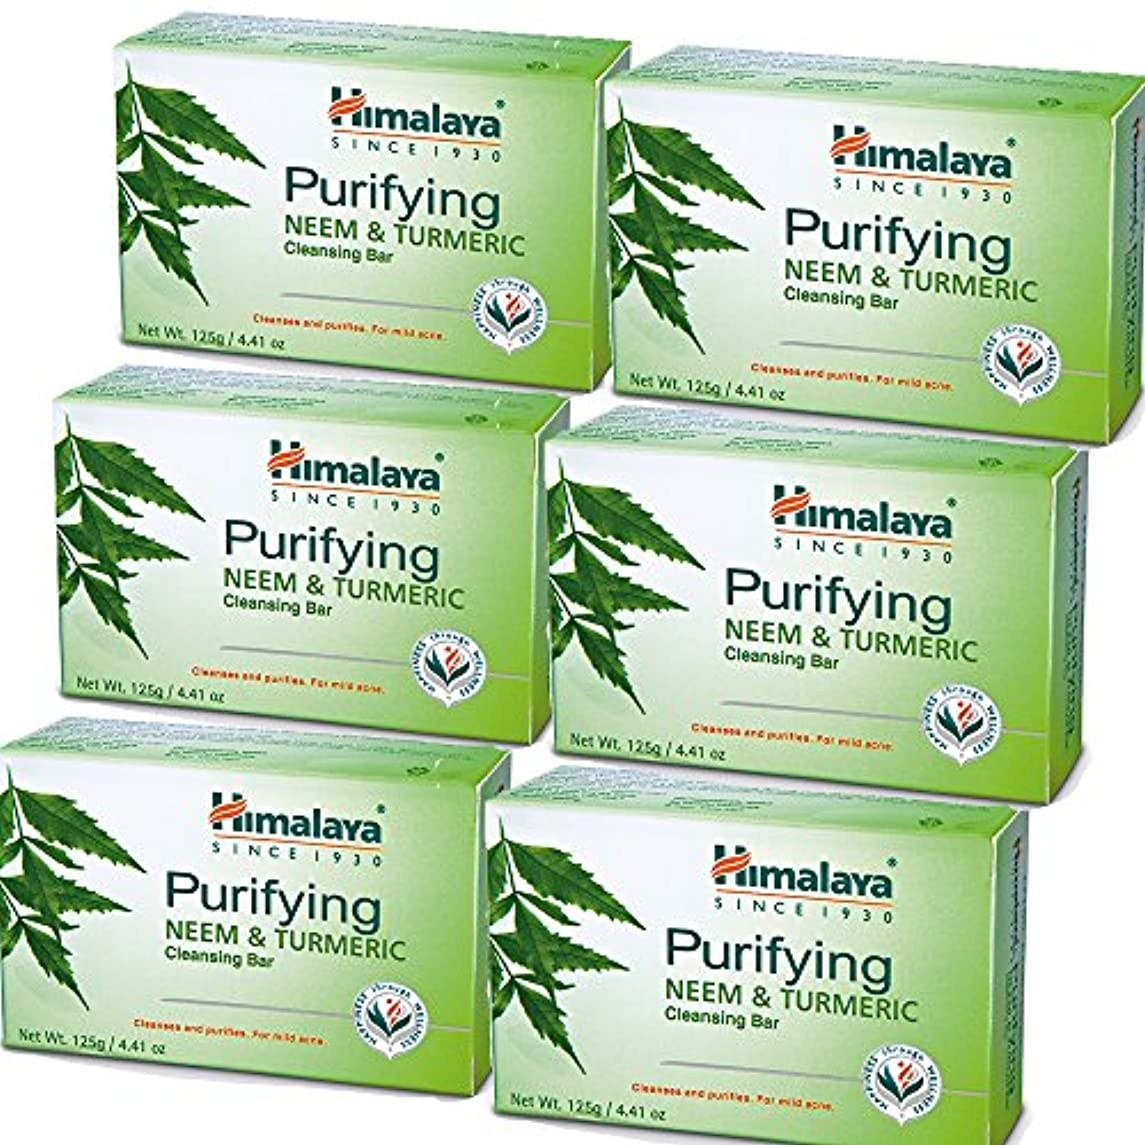 Himalaya Purifying Neem & Turmeric Cleansing Bar (6 PACK) for Clean and Healthy Looking Skin, 4.41 Oz/125 gm